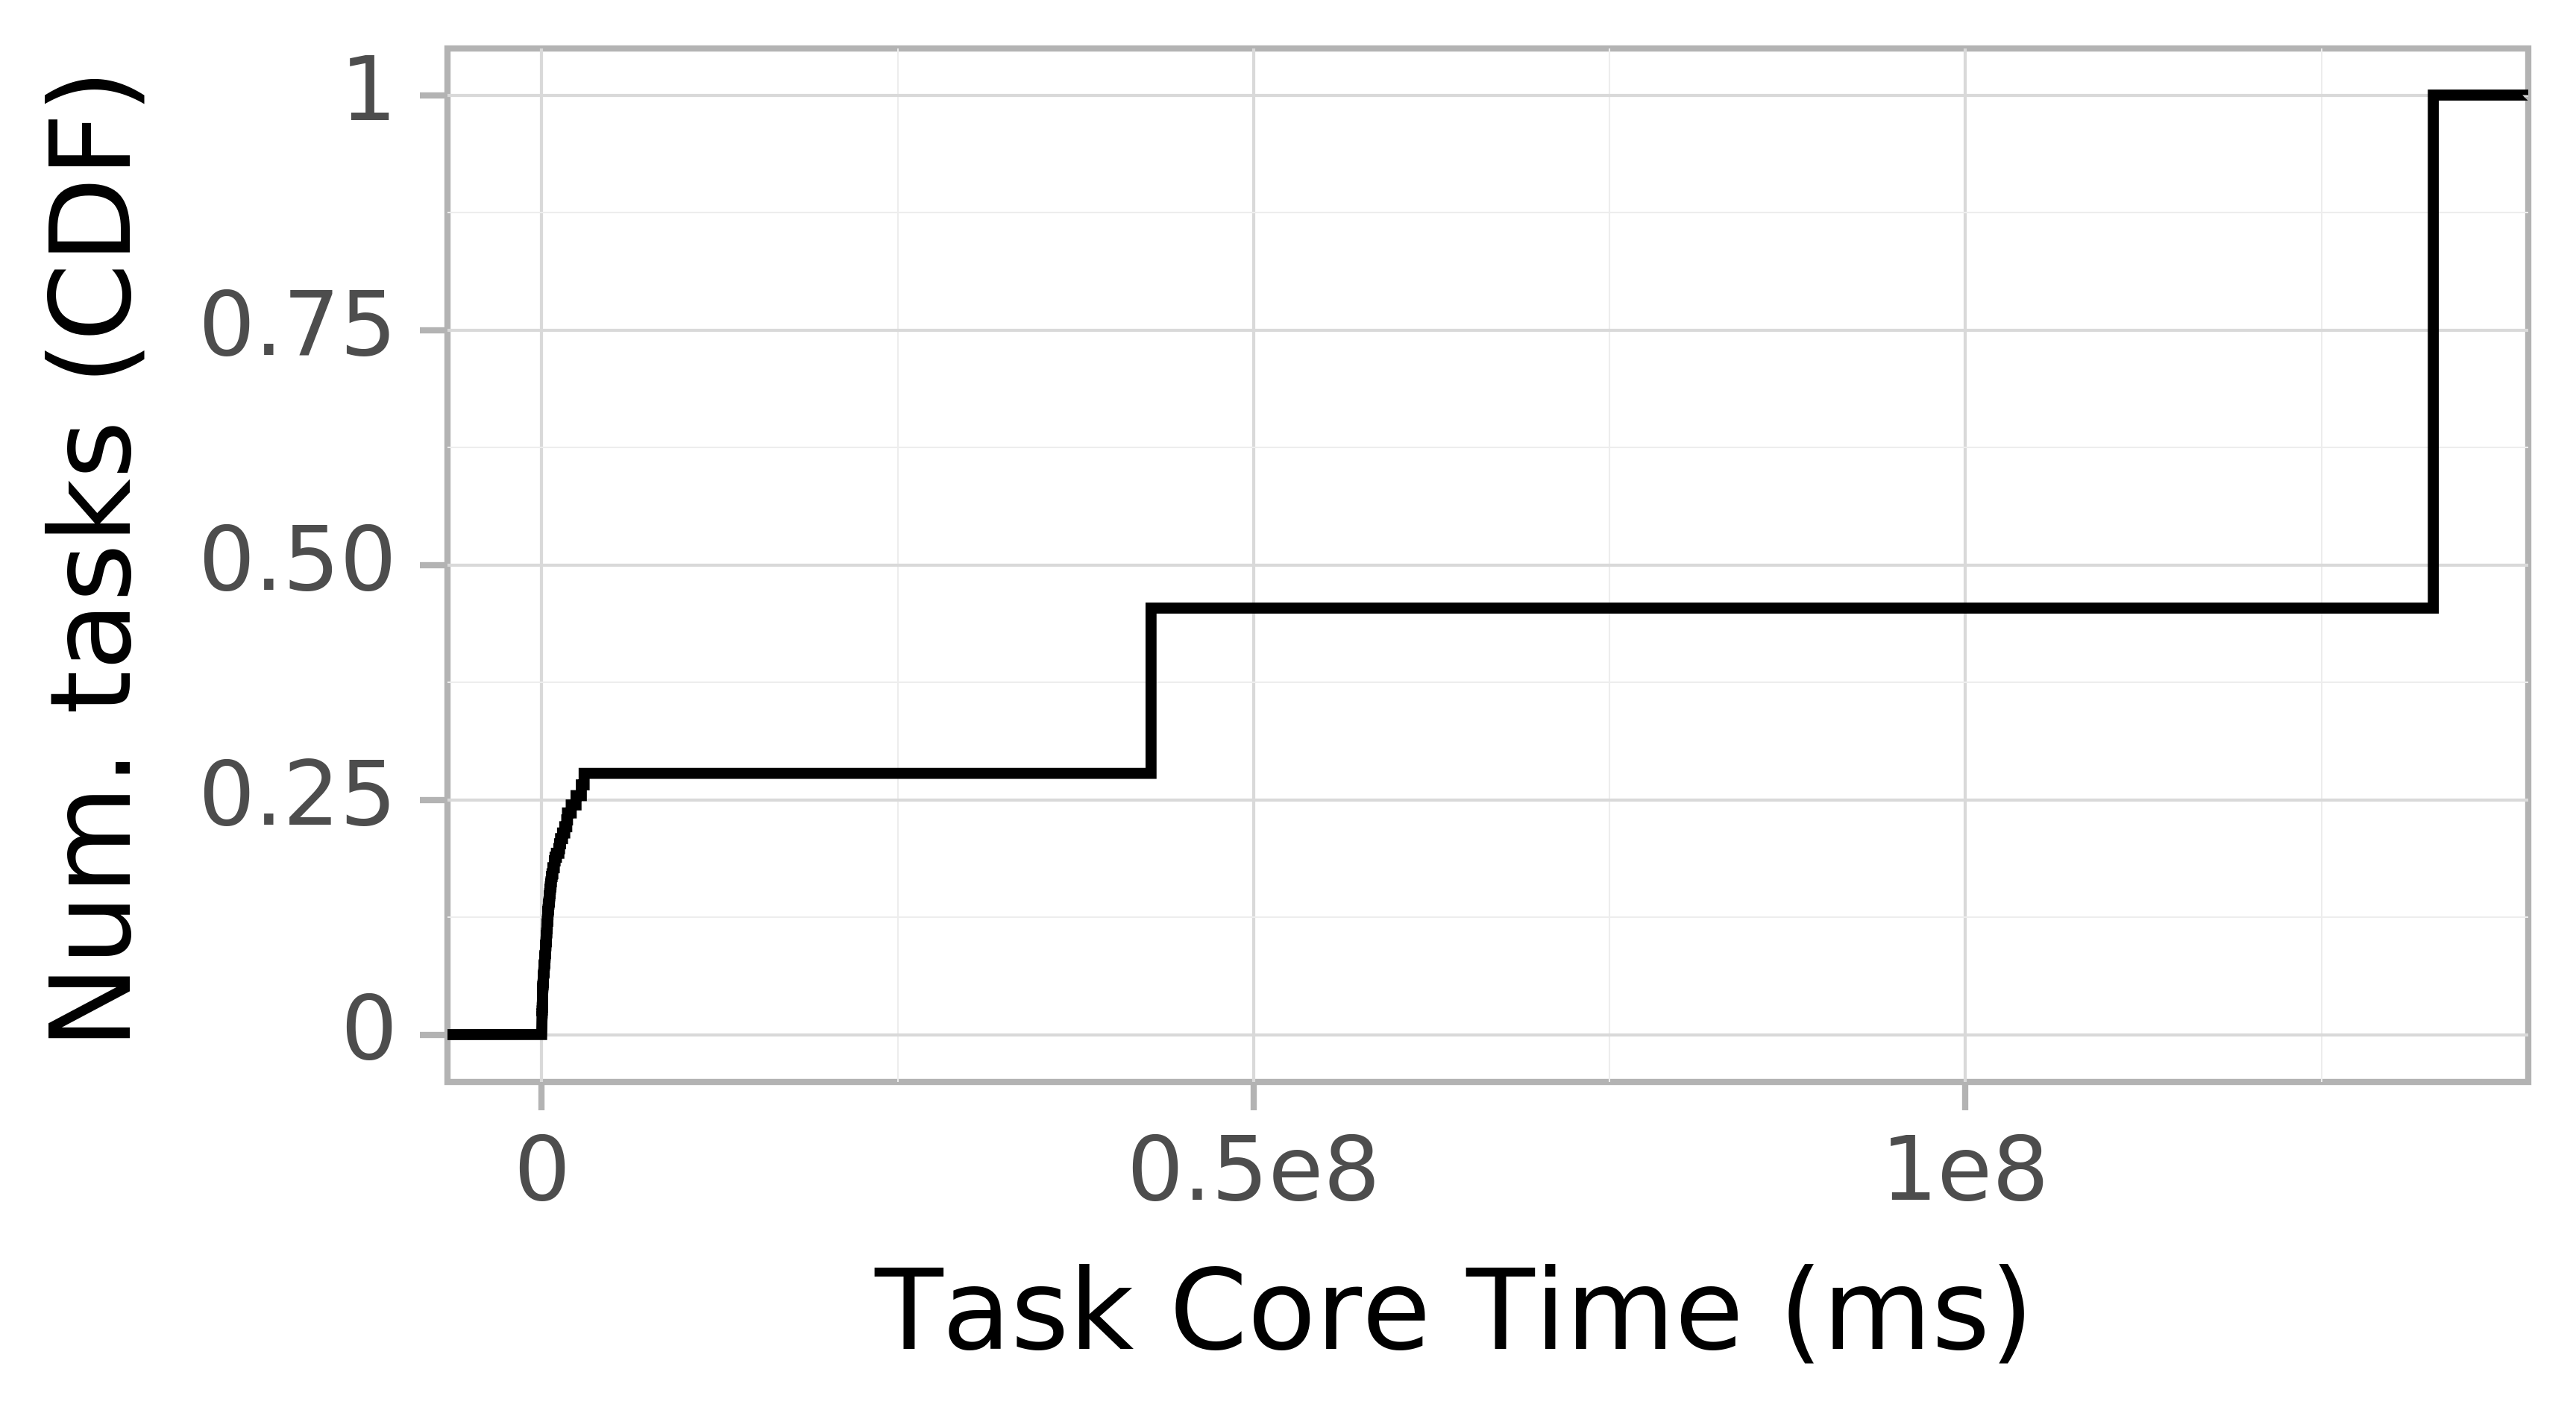 task resource time CDF graph for the Google trace.